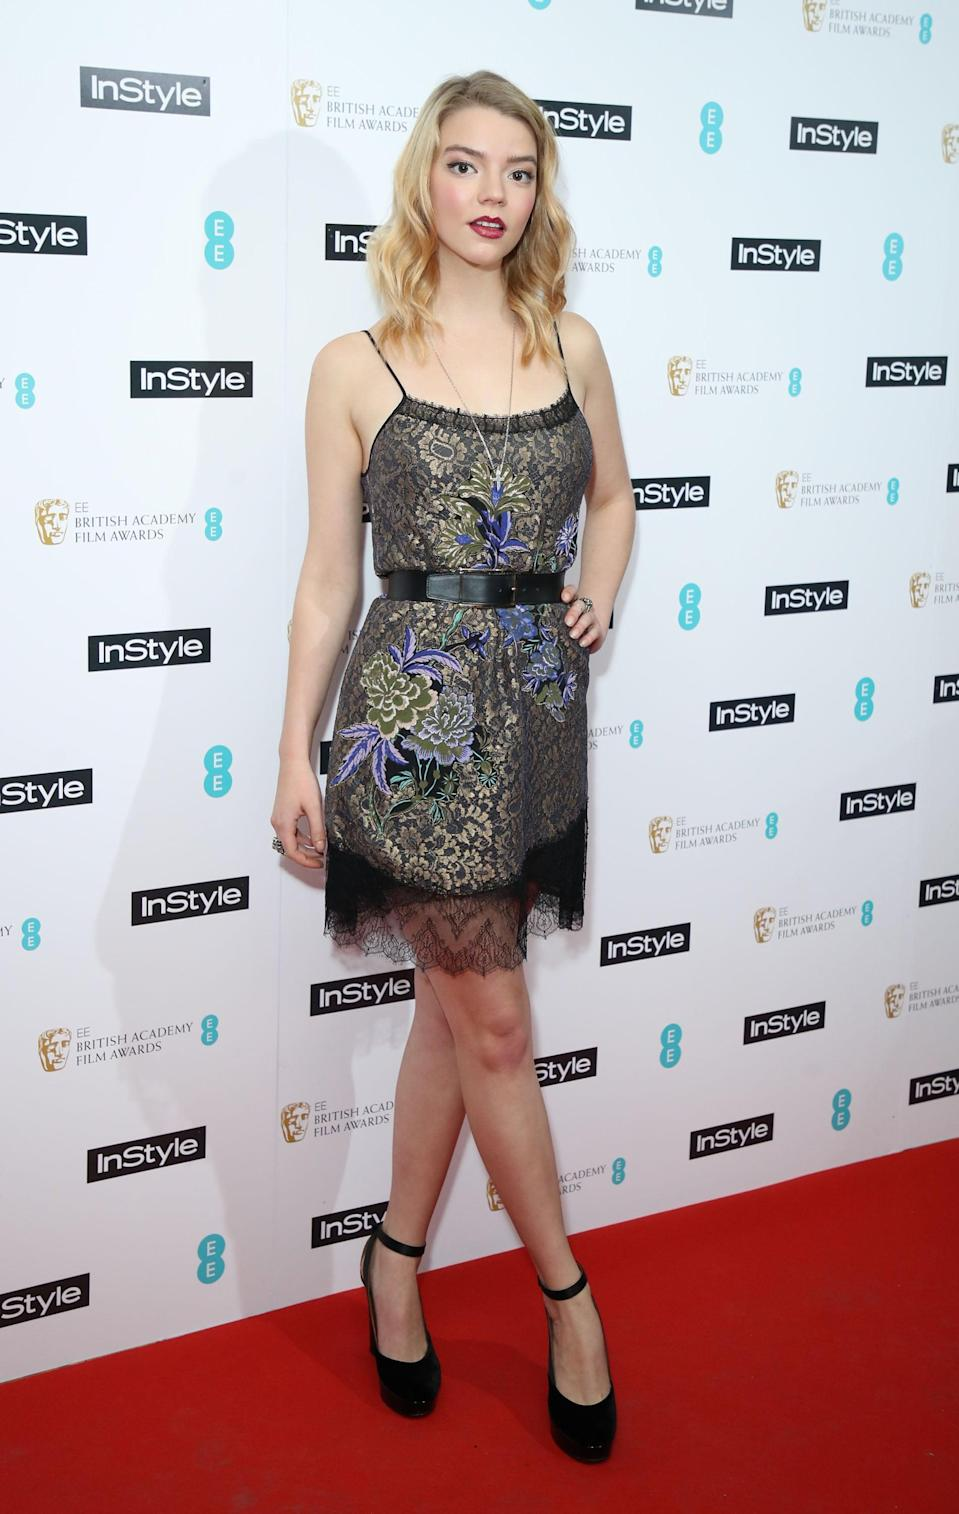 <p>Anya wore a lace minidress with spaghetti straps.</p>